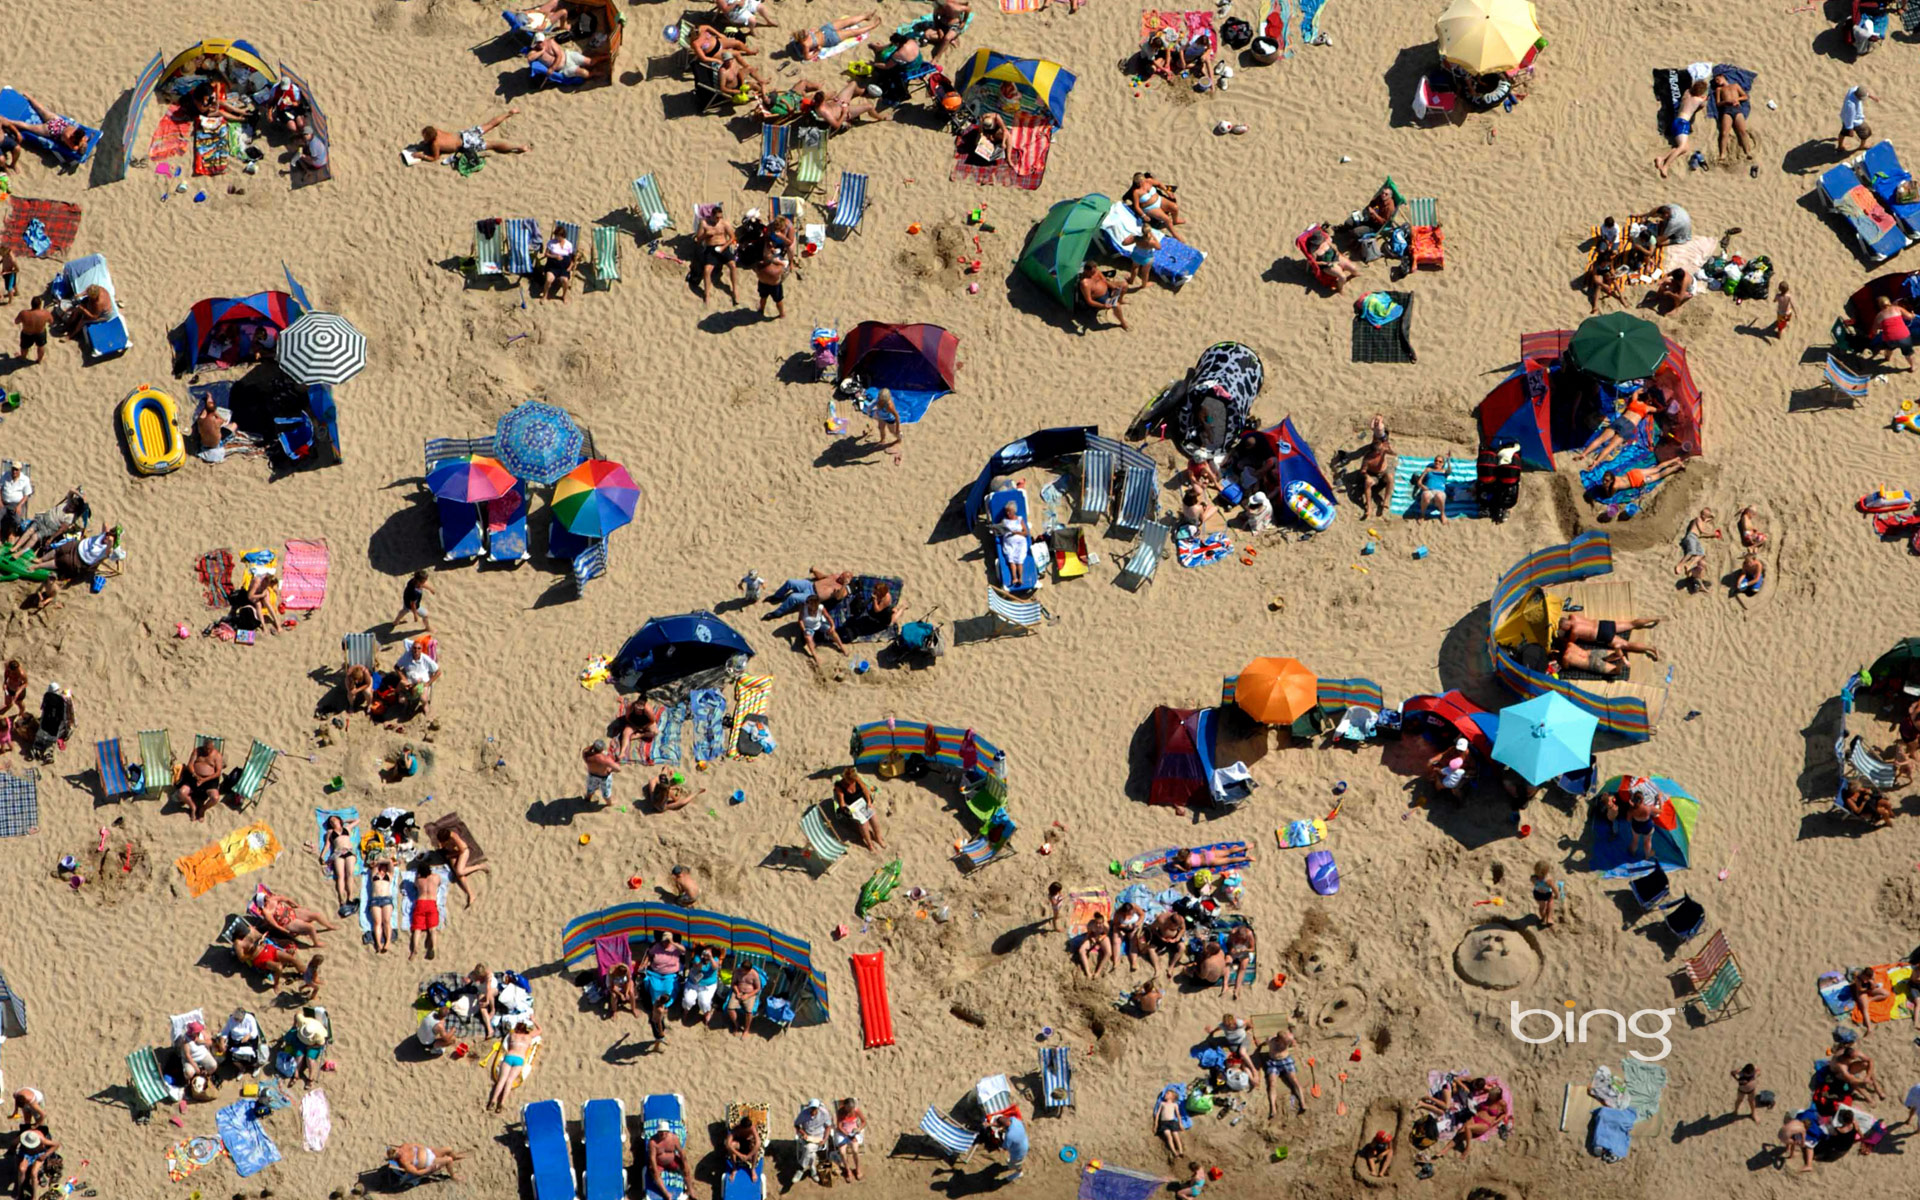 Crowds at Weymouth Beach in Dorset, England